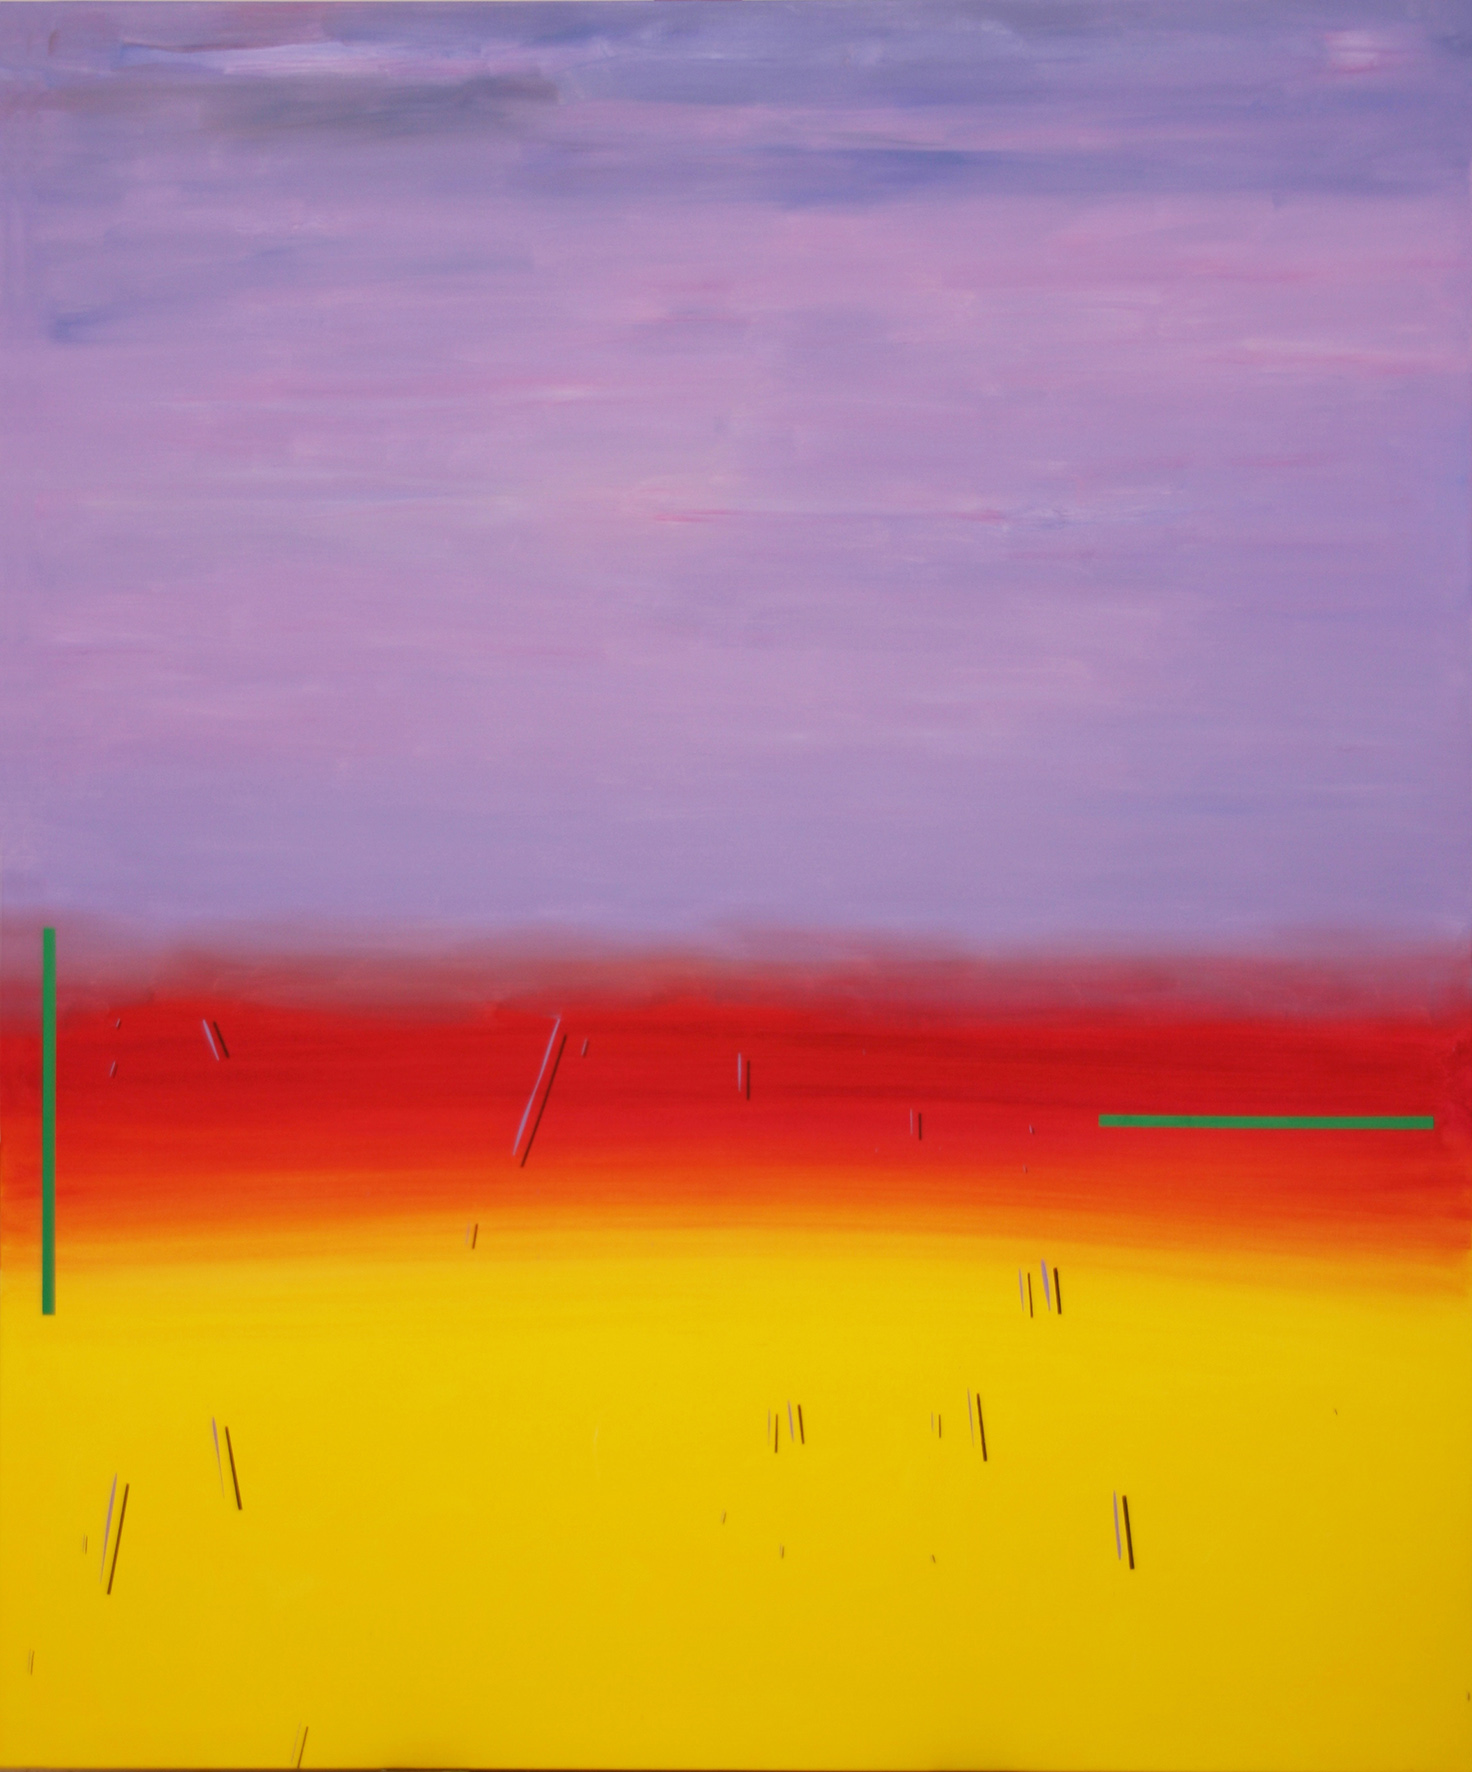 MIQUEL GELABERT, October Land I, oil on canvas, 76 x 63 in, 2016